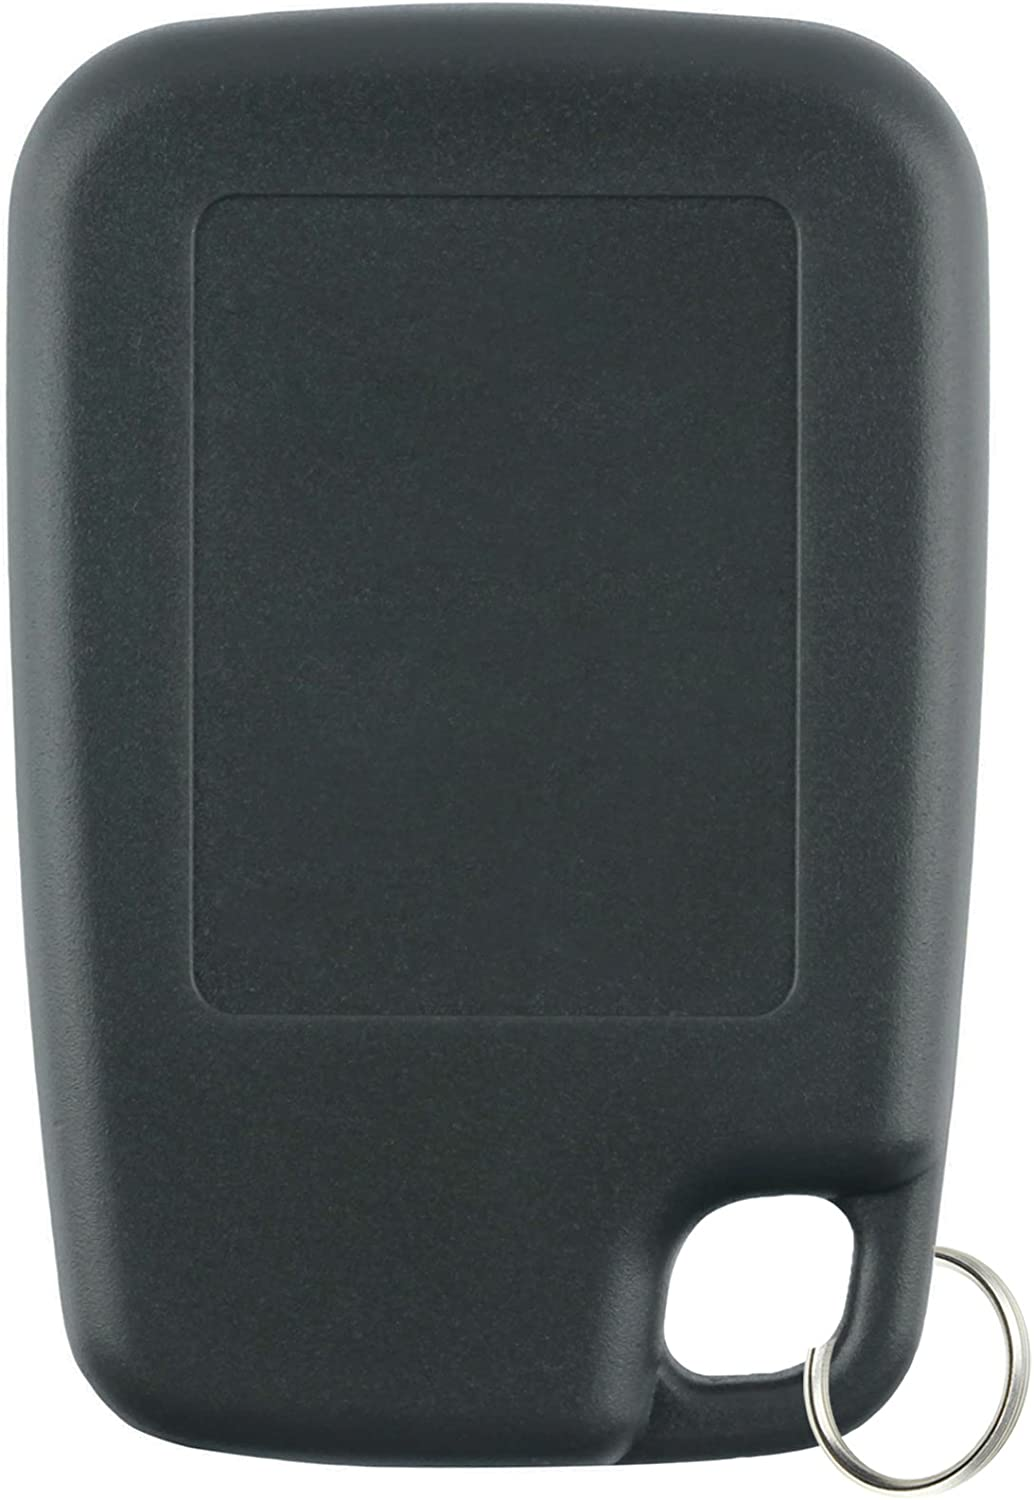 KeylessOption Keyless Entry Remote Control Transmitter Car Key Fob Replacement for Volvo HYQ1512J